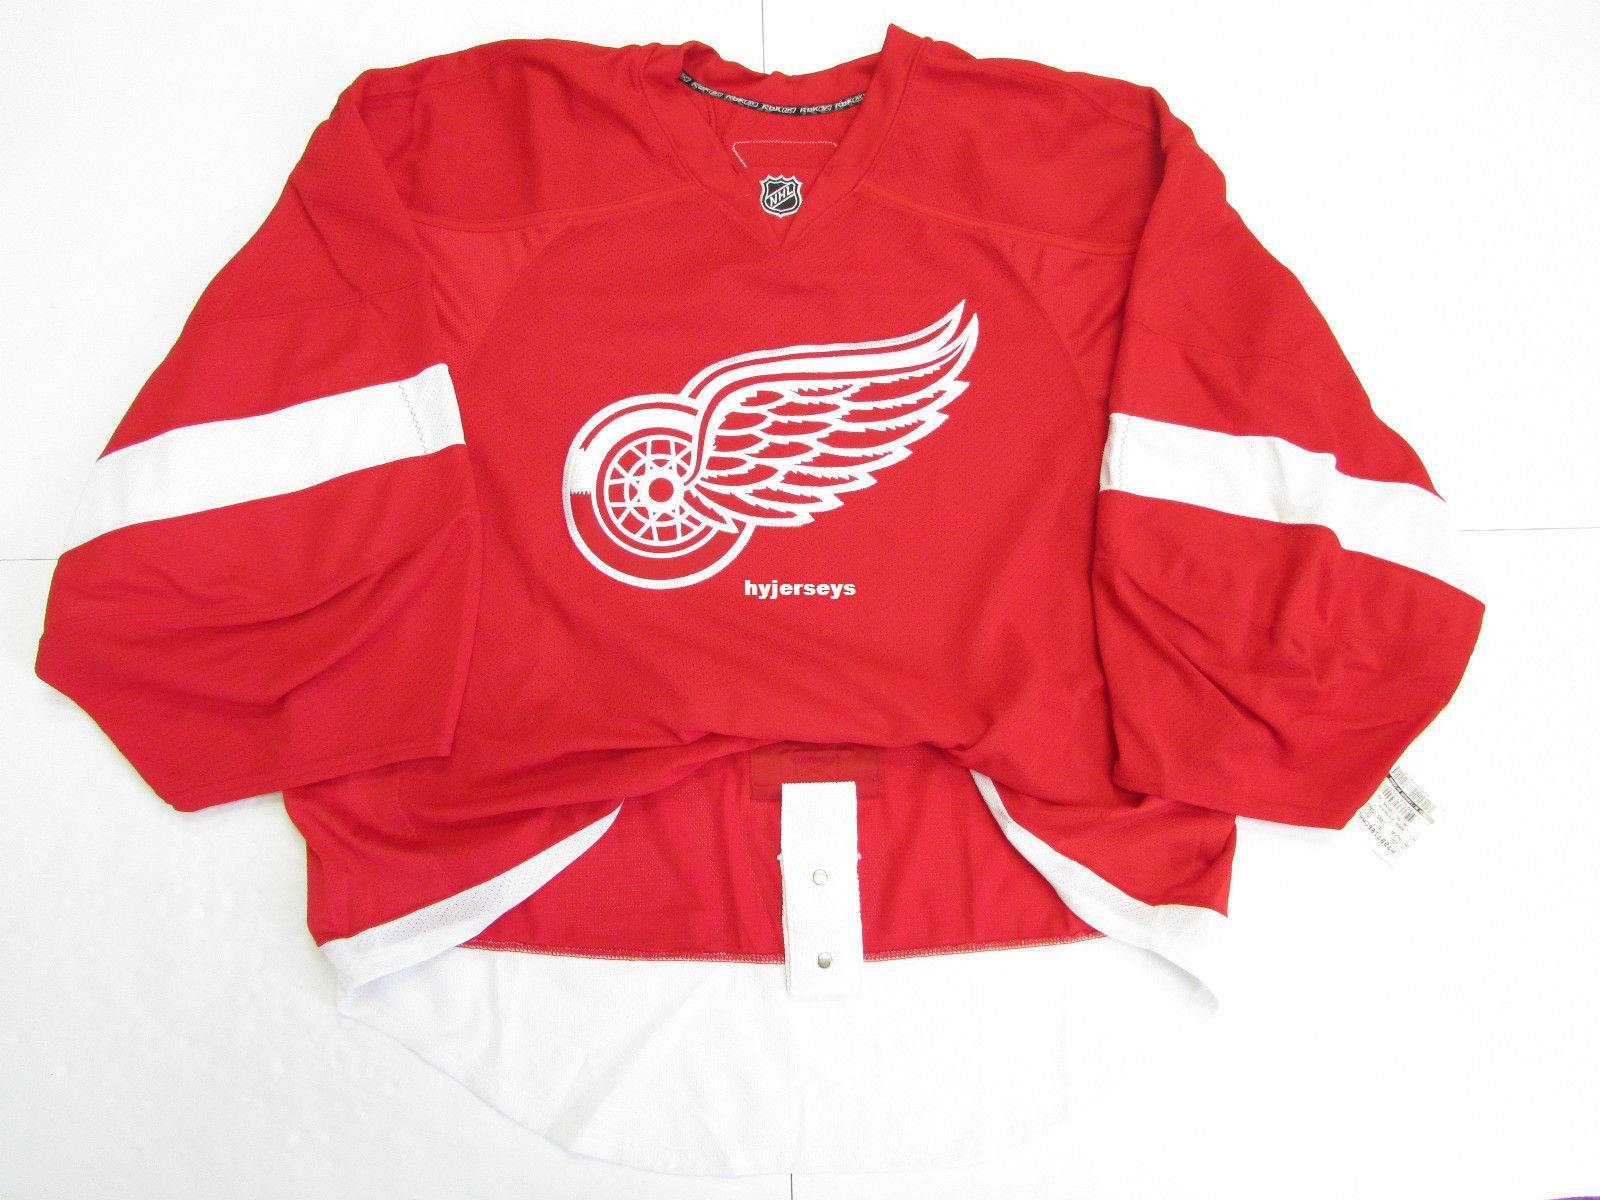 c77bd24adcd Cheap Custom DETROIT RED WINGS HOME TEAM ISSUED EDGE JERSEY GOALIE CUT Mens  Stitched Personalized Hockey Jerseys Online with  67.46 Piece on  Hyjerseys s ...